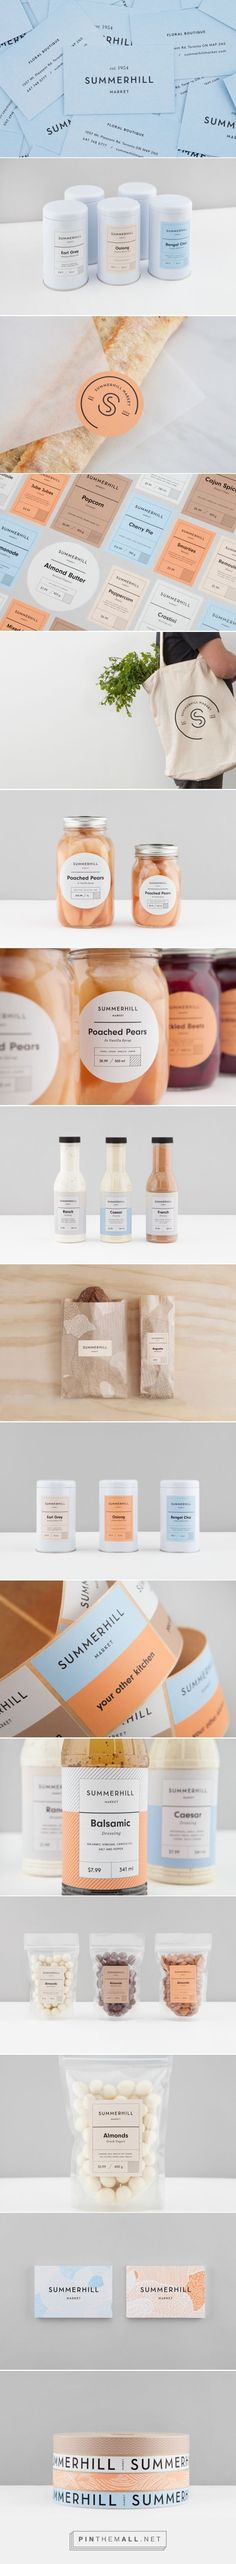 Summerhill Market Food Branding and Packaging by Blok Design | Fivestar Branding Agency – Design and Branding Agency & Curated Inspiration Gallery